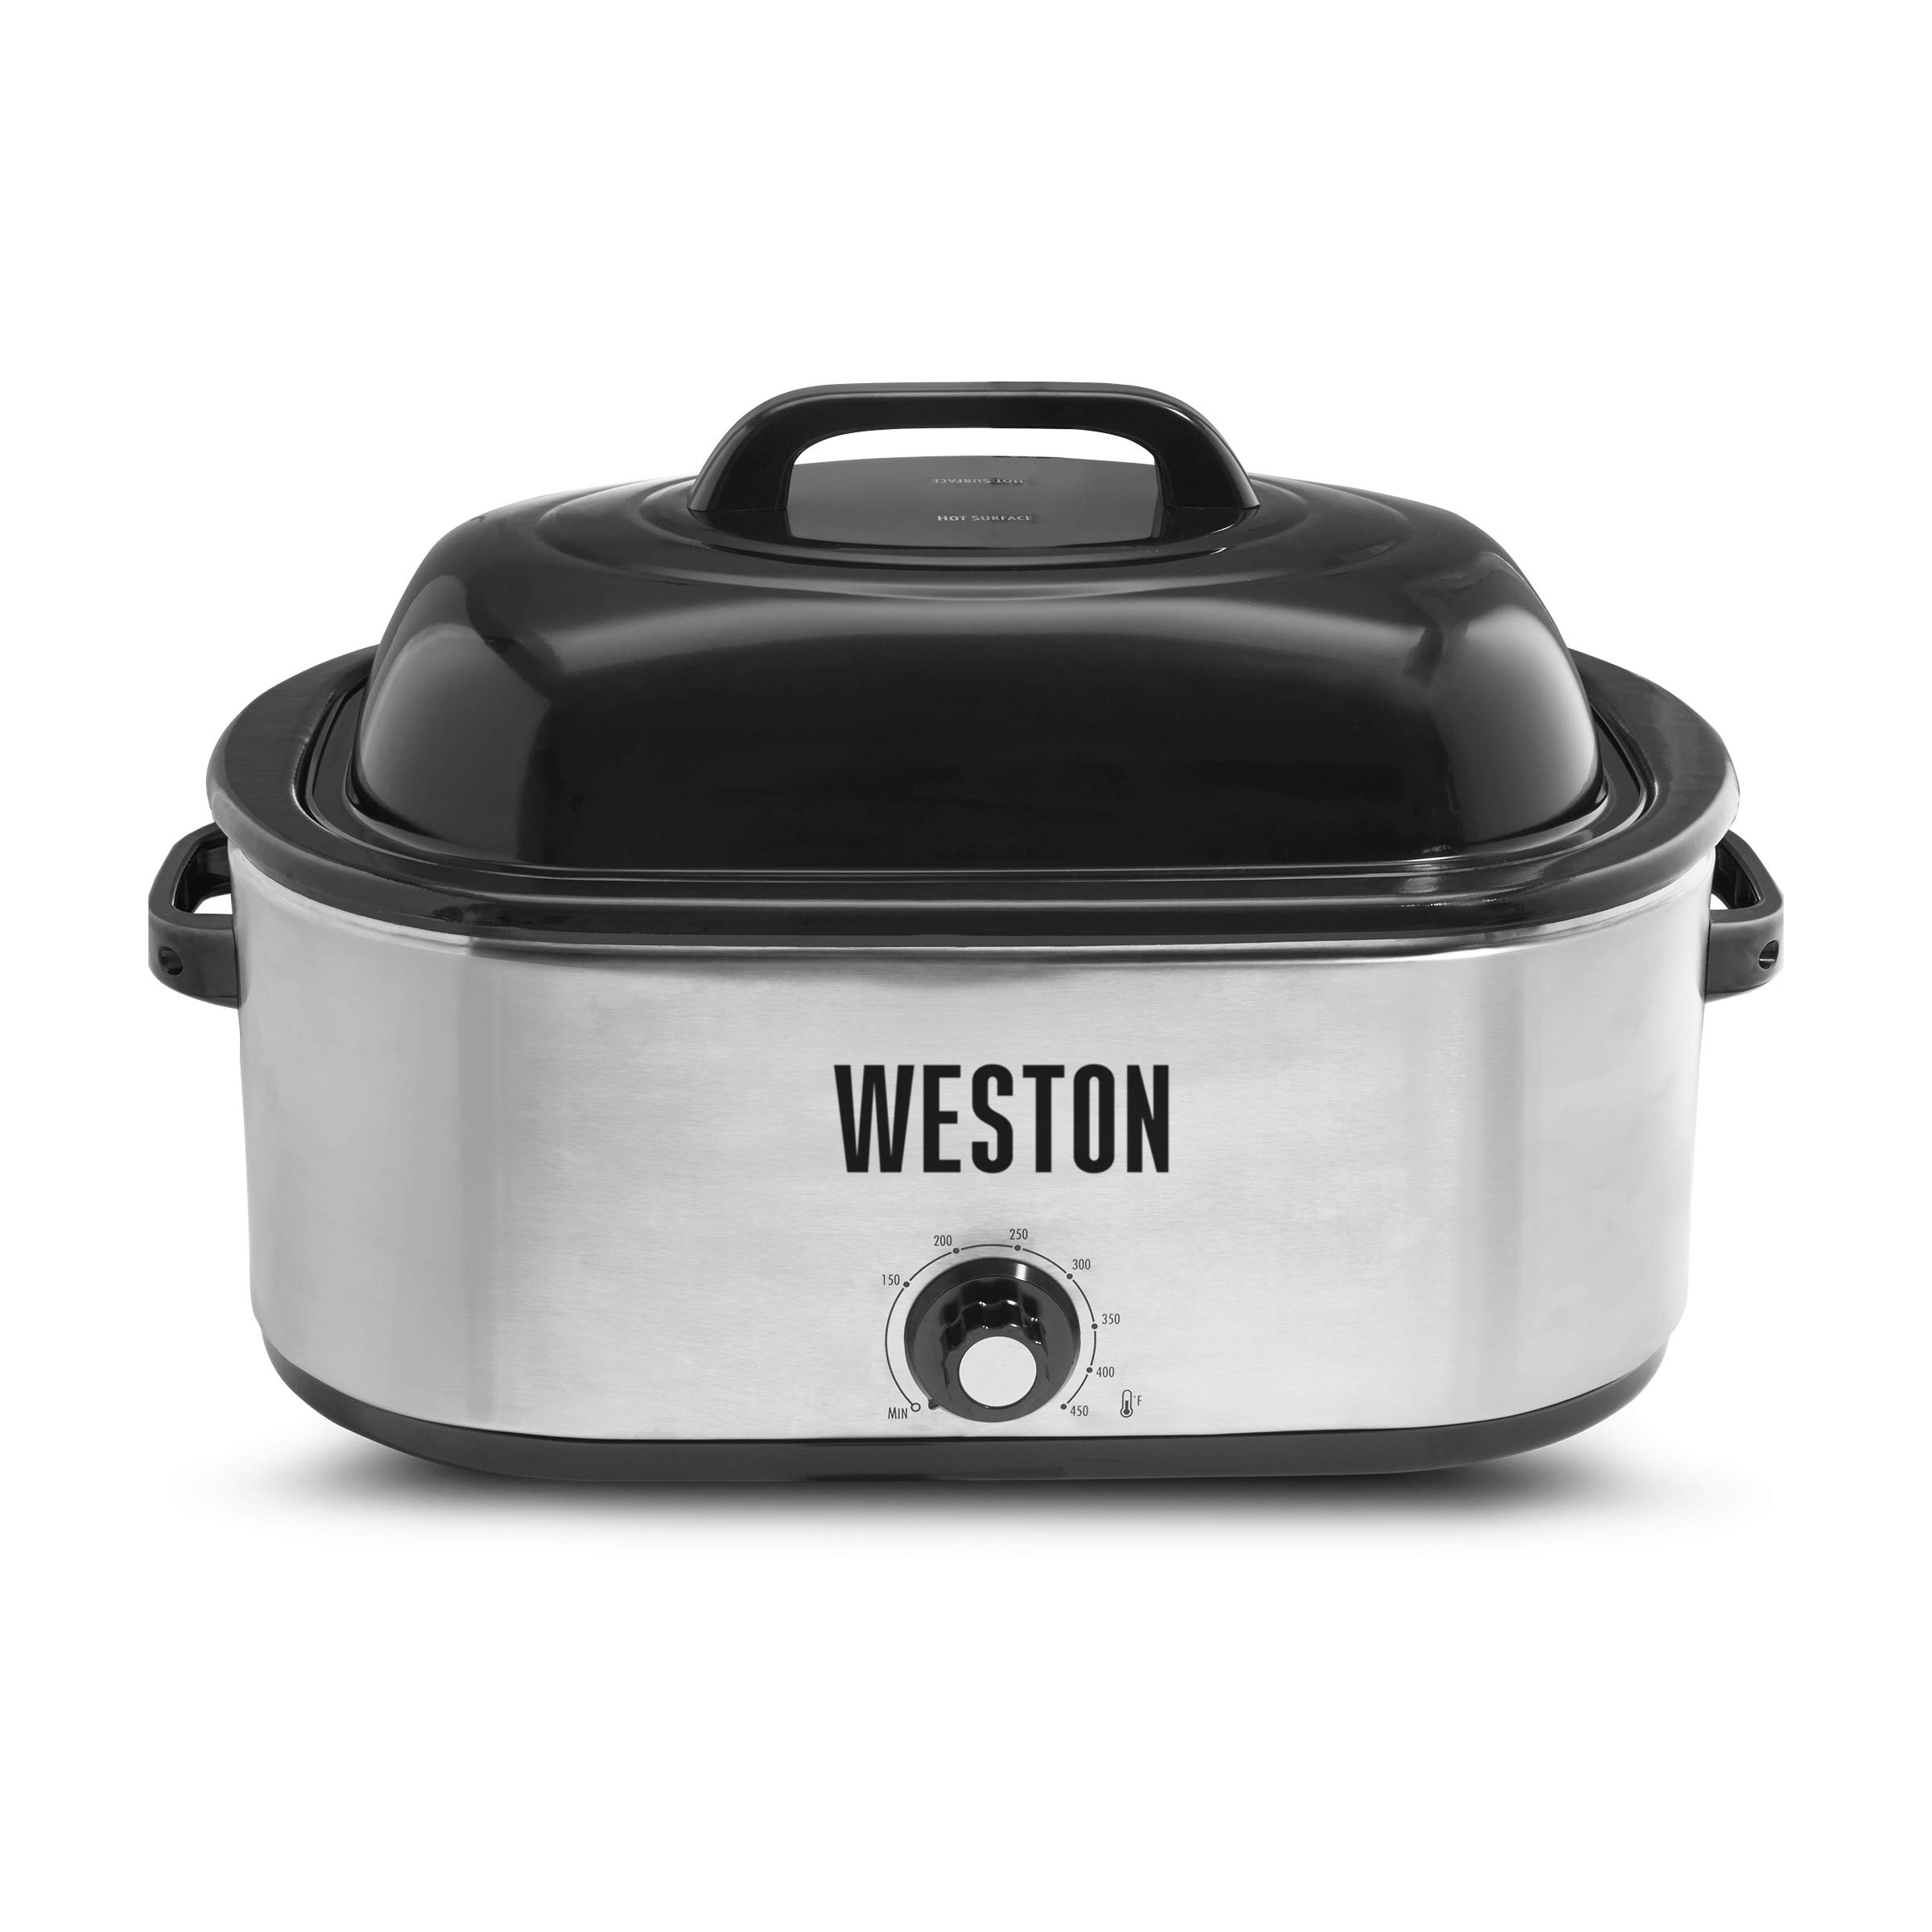 Weston 03-4100-W Roaster Oven, 22 Quart, Stainless Steel by Weston